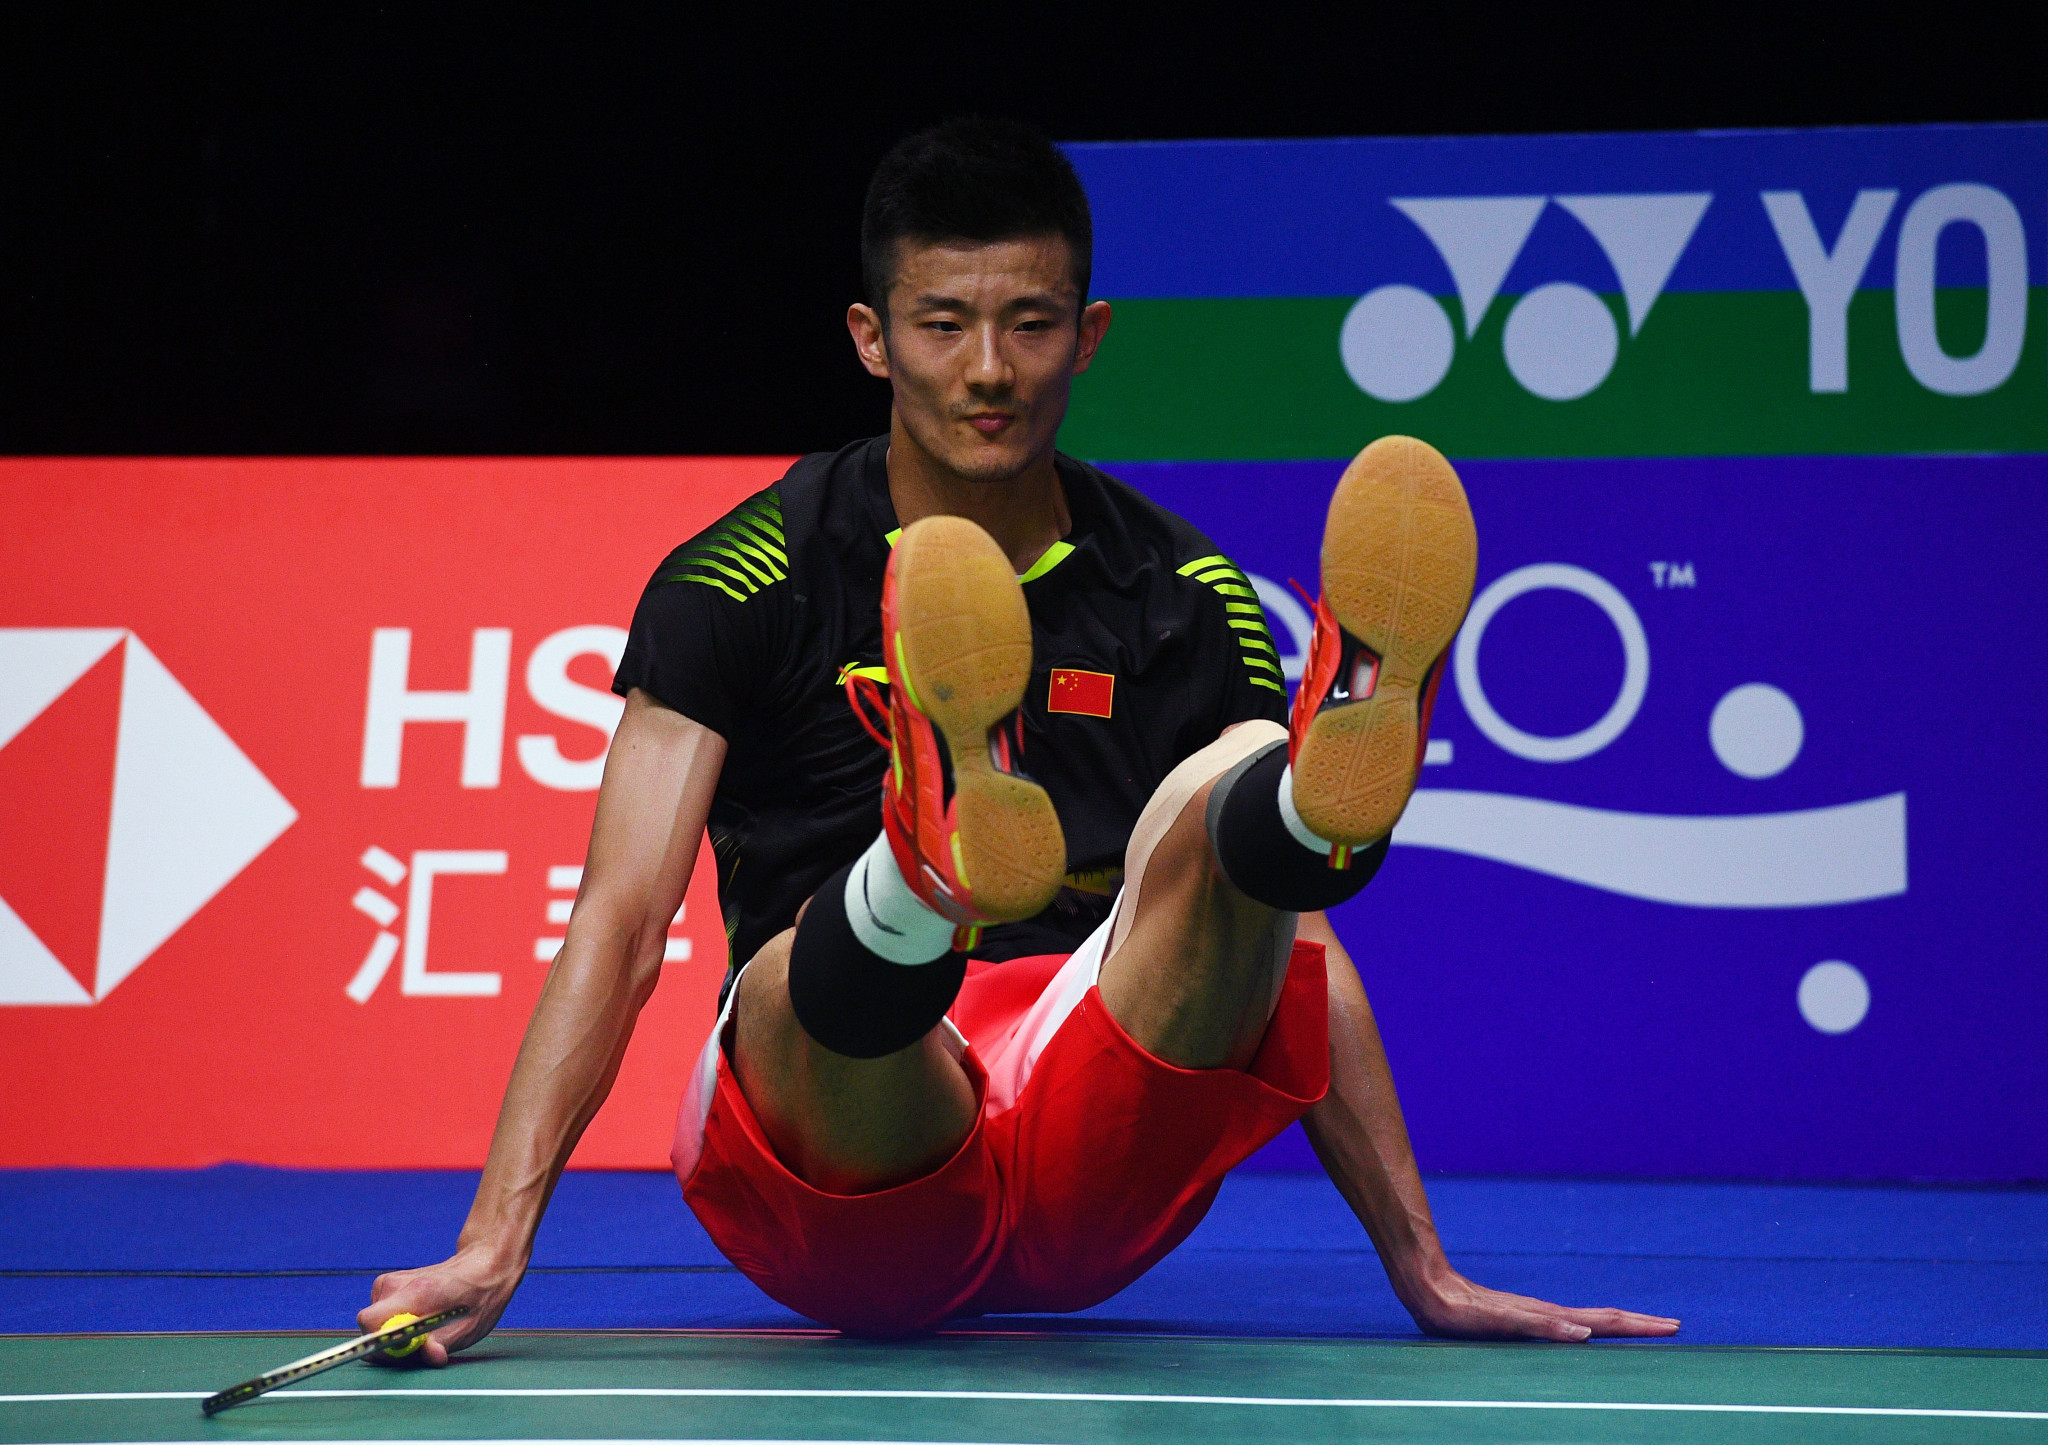 Top seeds and defending singles champions beaten at Badminton World Championships